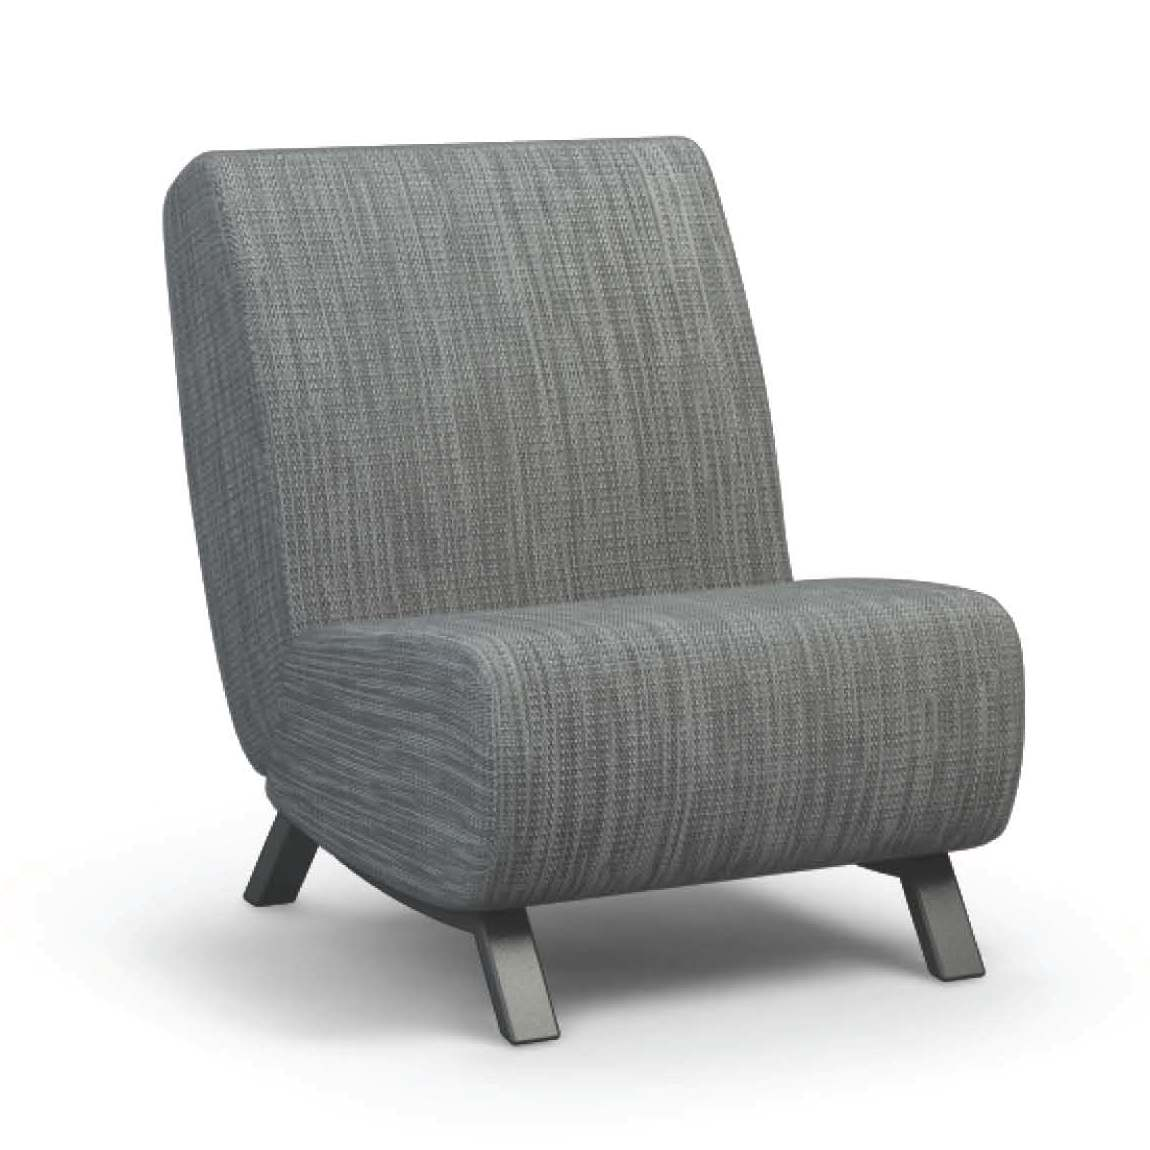 Airo2 (Aluminum) Armless Chair - taylor ray decor